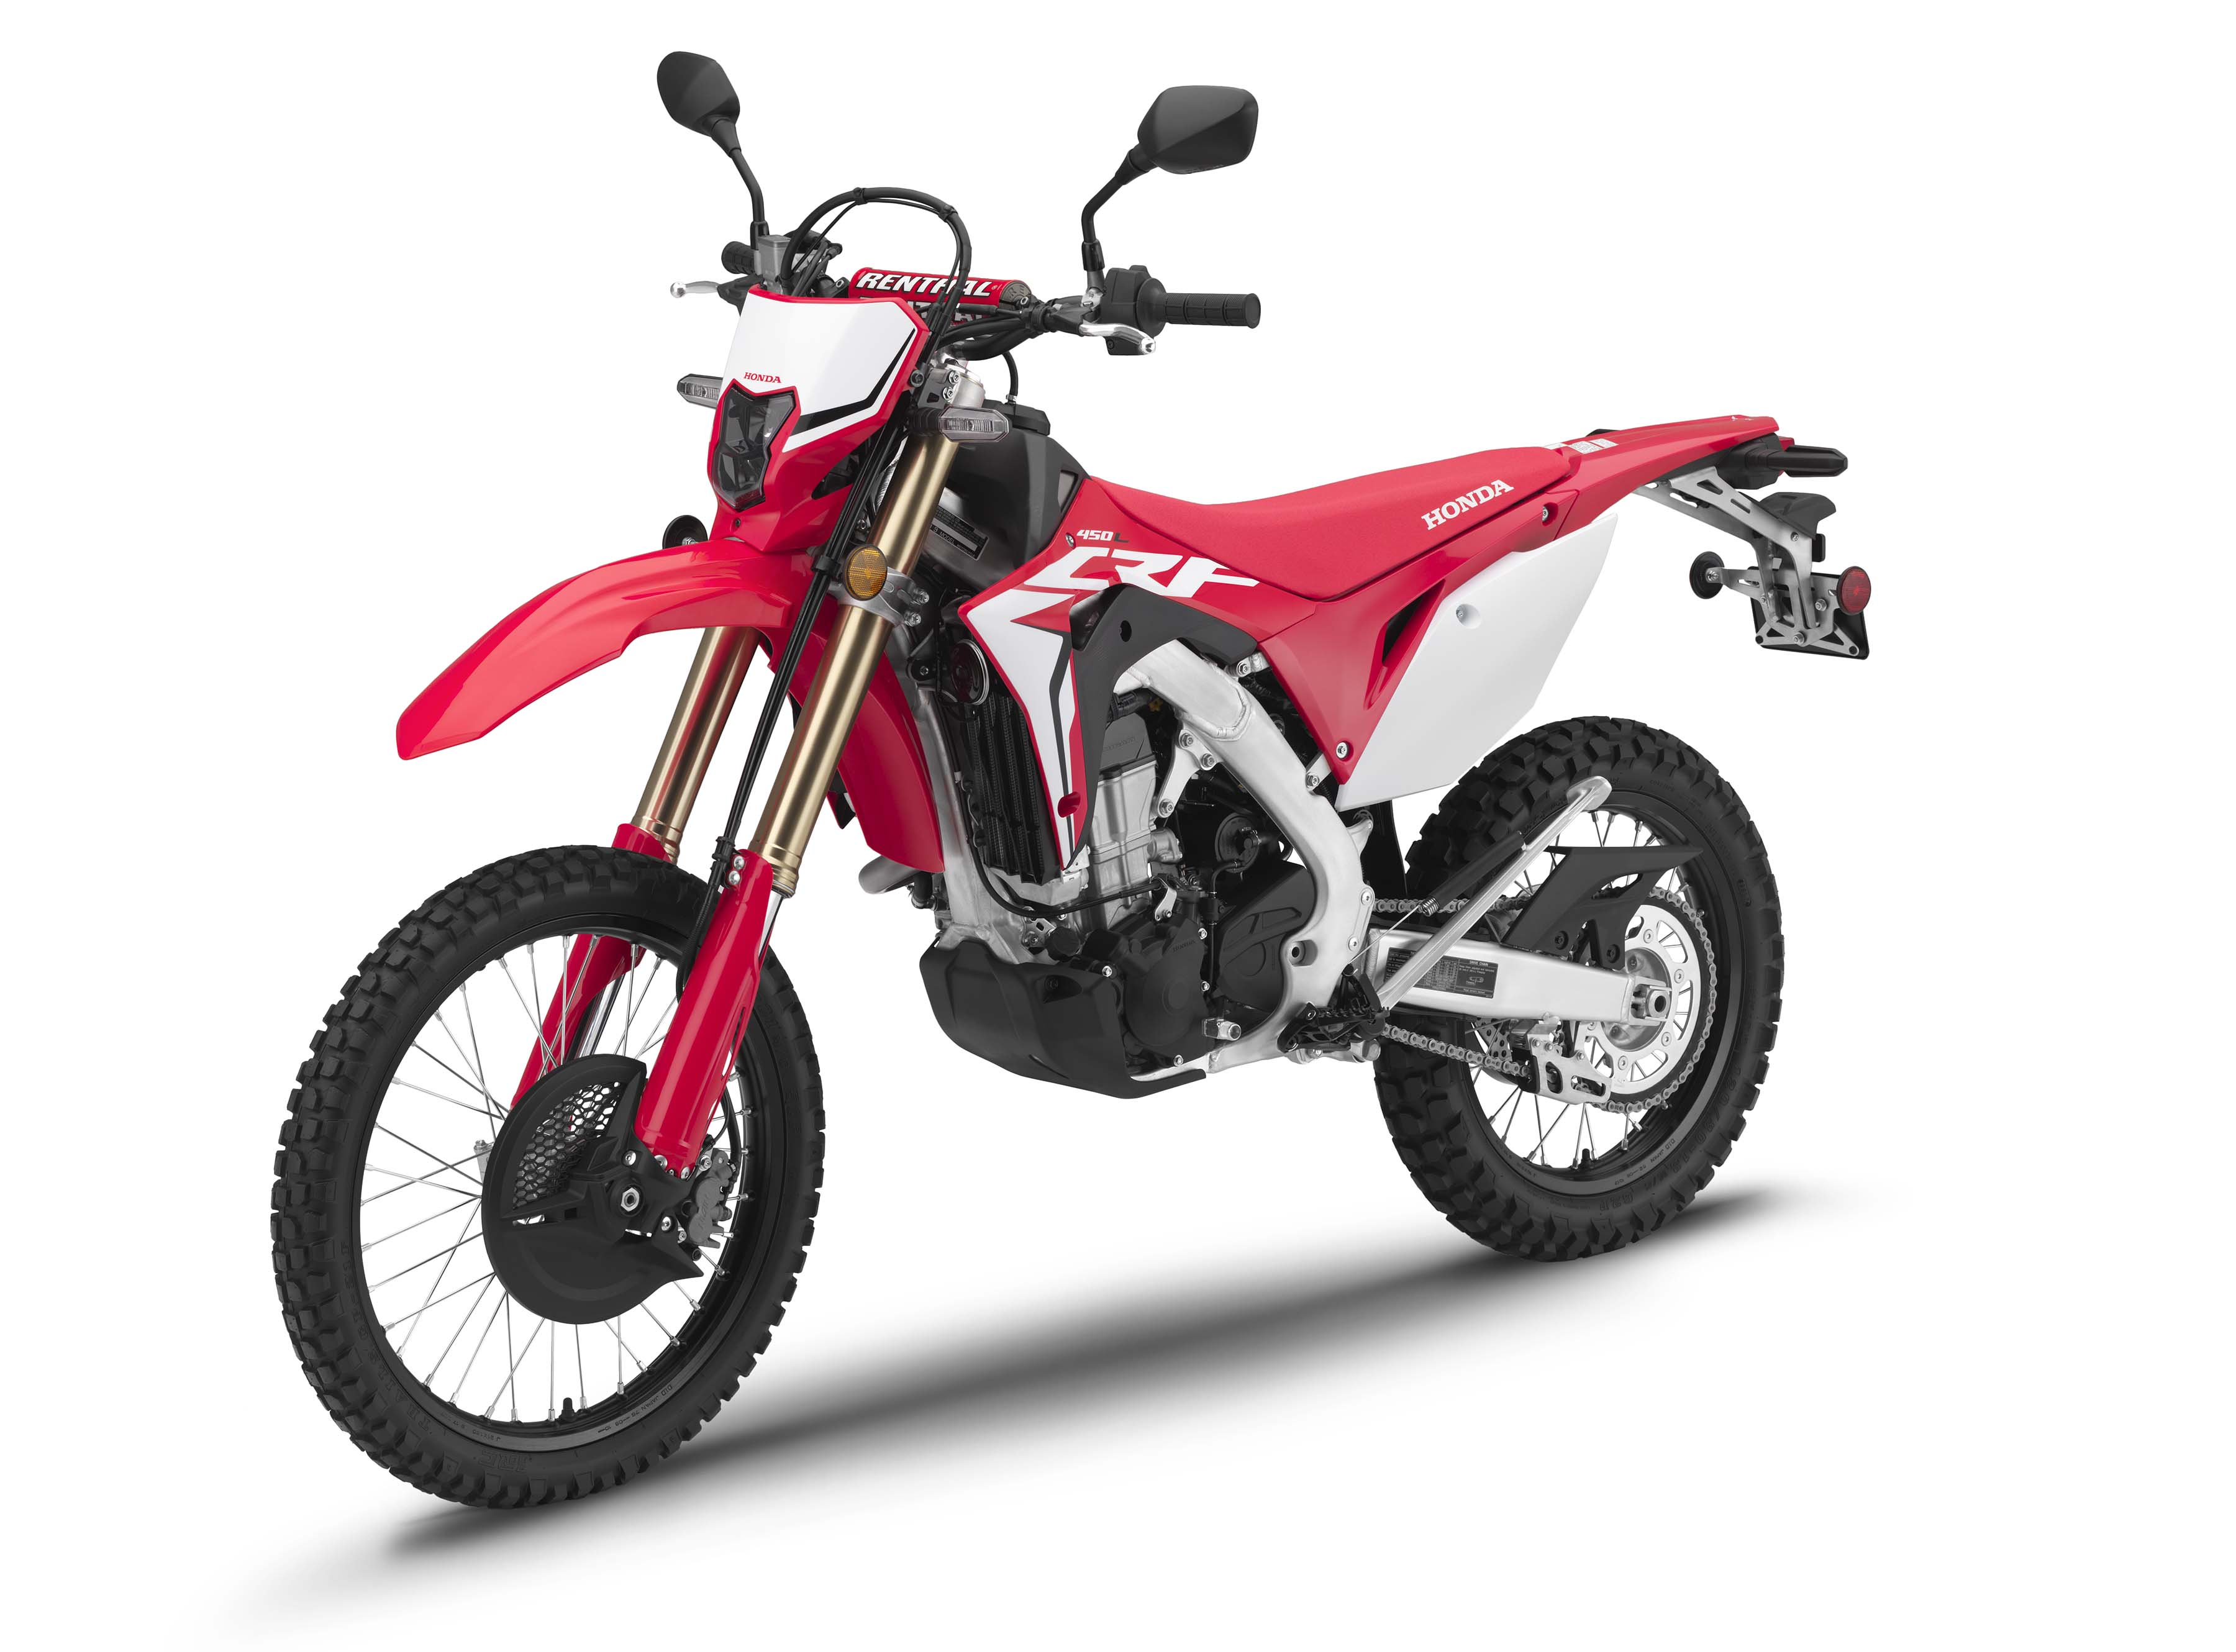 2019 Honda Crf450l Dual Sport Debuts Pink Dirt Bike Hopefully This Means That Other Brands Will Follow Hondas Lead And We See More 450cc Sports On The Market In Coming Years